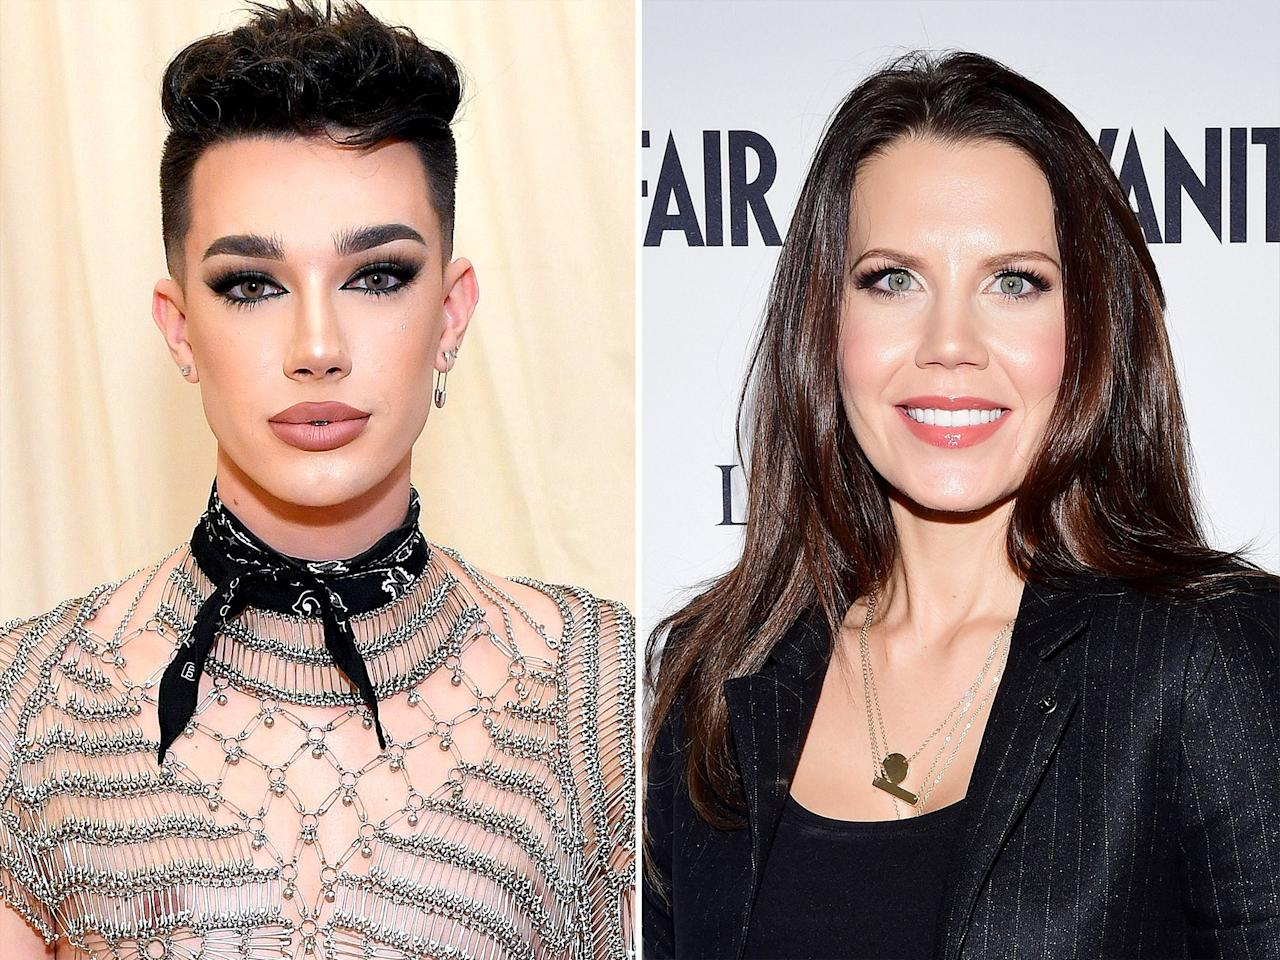 """Though not as dark as some fellow influencers' troubles, this one almost broke the Internet in 2019.  <a href=""""https://people.com/style/james-charles-tati-westbrook-feud/"""">More than 3 million people unsubscribed</a> from 19-year-old beauty influencer James Charles' YouTube page over one weekend in May, amid backlash over his feud with fellow YouTube beauty vlogger Tati Westbrook.  Trouble started for Charles back in April, after he posted a sponsored advertisement from Coachella for<a href=""""https://www.sugarbearhair.com/"""">Sugar Bear Hair vitamins</a> to his Instagram Story. The company is a direct competitor to Westbrook's supplement brand, Halo Beauty.  Upset about it, Westbrook lashed out on Instagram, explaining in a video that she felt """"betrayed"""" and """"lost.""""  Charles attempted to apologize with his own statement on Instagram, but Westbrook wasn't having it — especially after Charles' friend Gabriel Zamora posted a YouTube rant of his own, dragging her and calling her """"fraudulent."""" In response, she uploaded a 43-minute video titled 'BYE SISTER' in which she accused Charles of being unsupportive, attacked him for spreading lies about her, slammed him for alleged comments he made about other beauty influencers, and claimed he had a habit of sexually harassing straight men."""